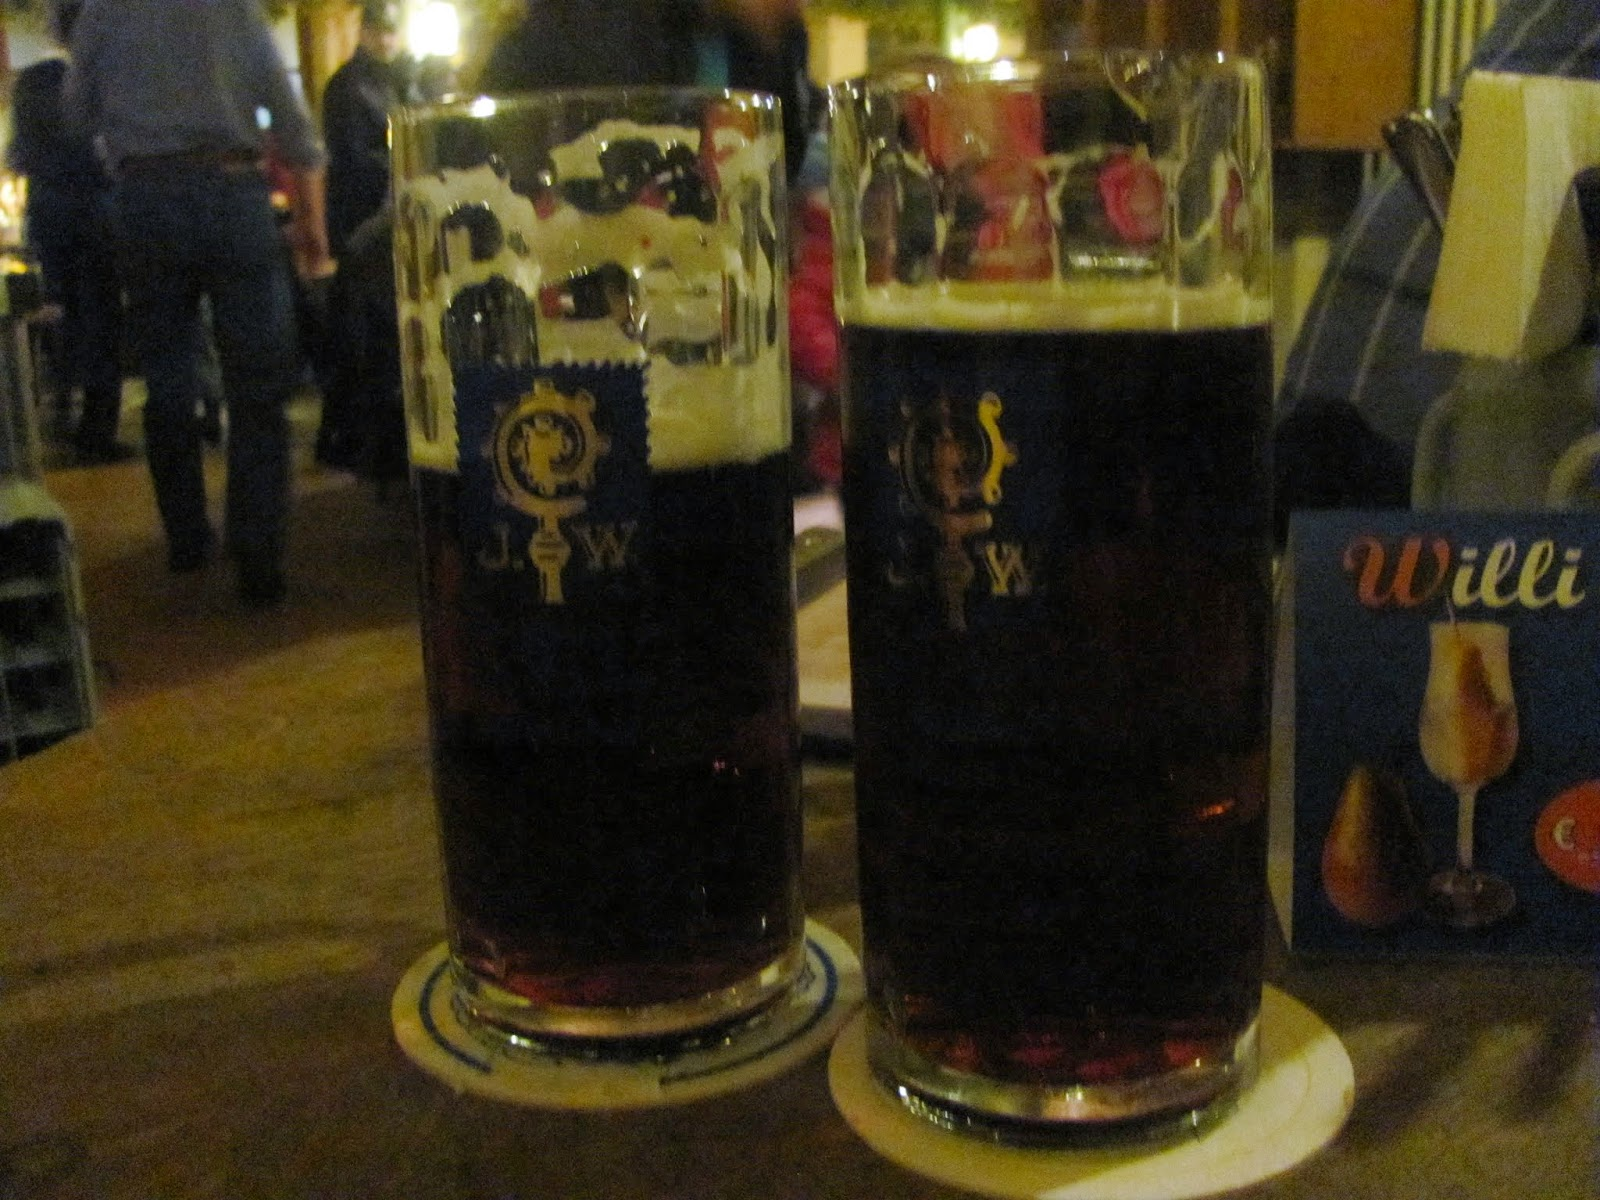 Augustiner Dunkels at Augustiner Beer Hall Munich